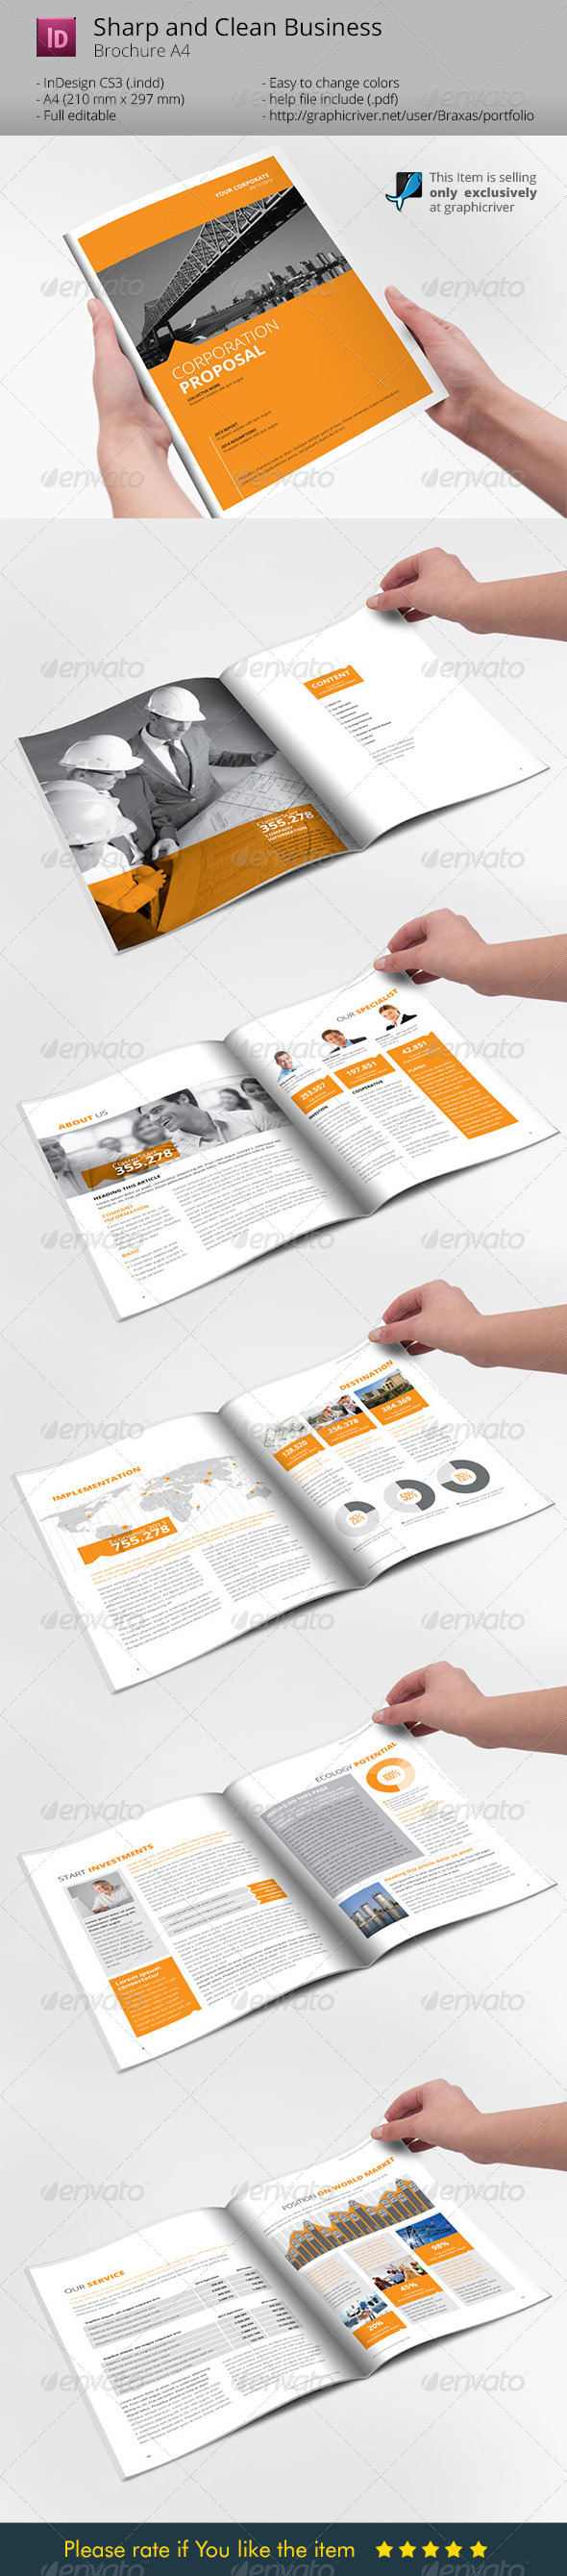 Sharp and Clean Business Brochure - Corporate Brochures